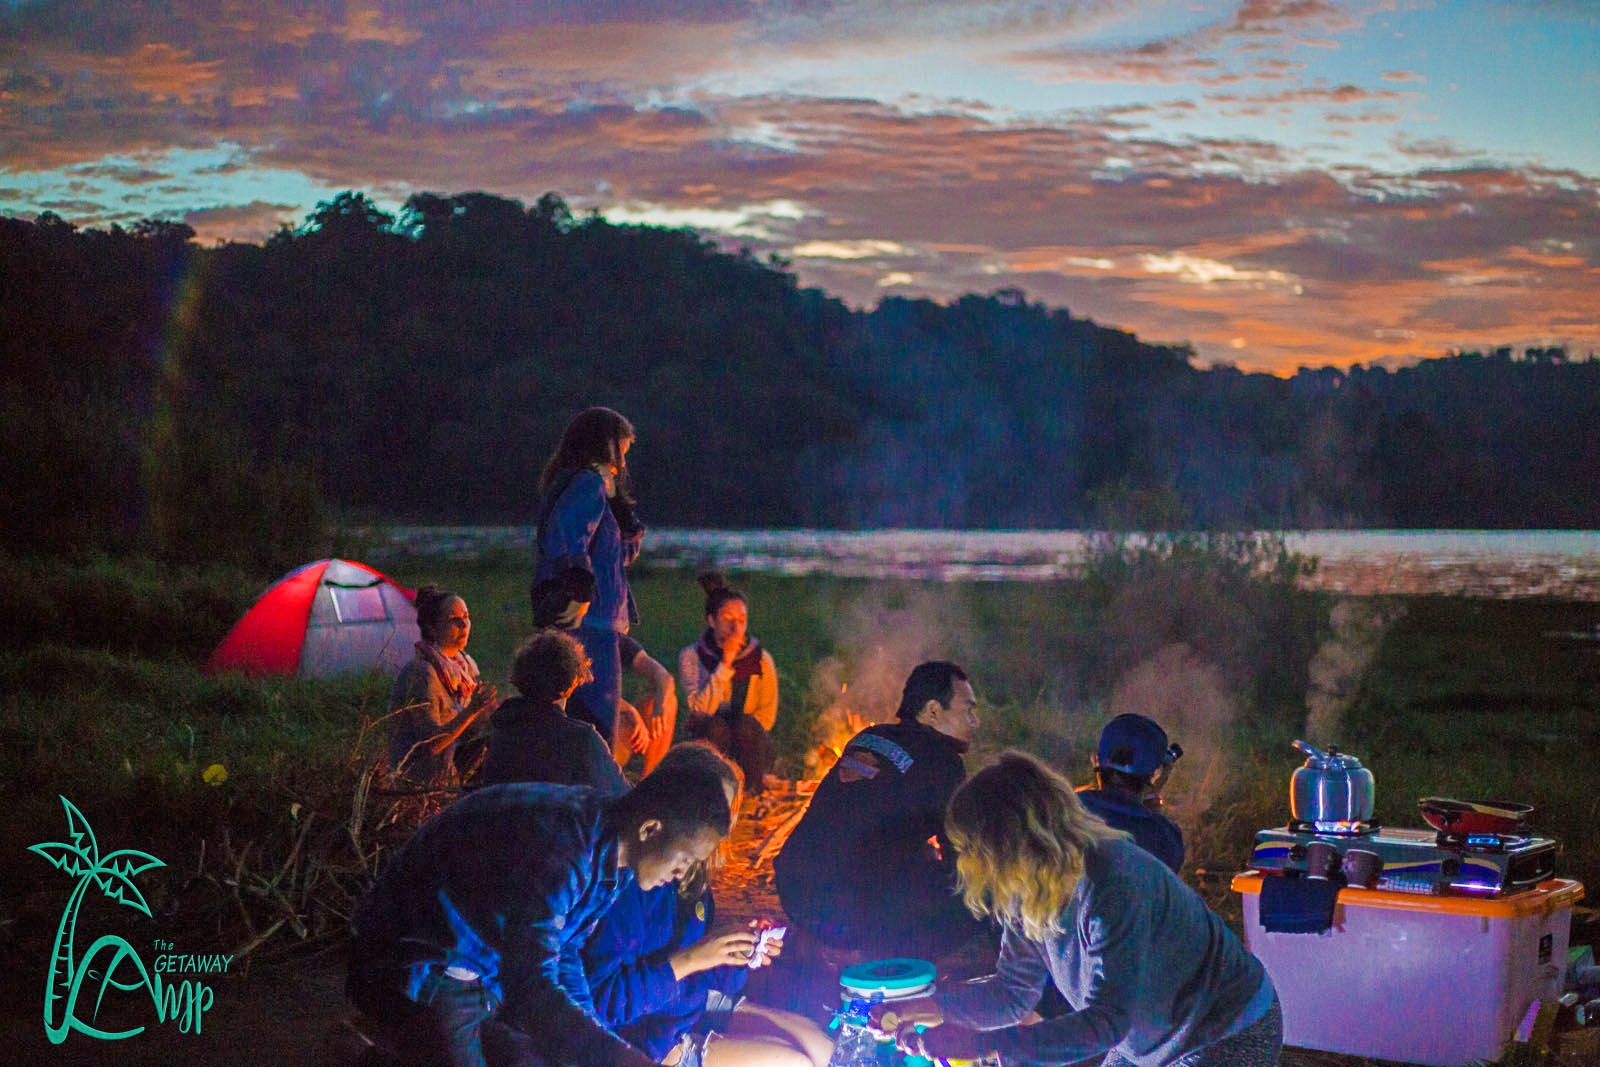 Go back into nature with The Getaway Camp